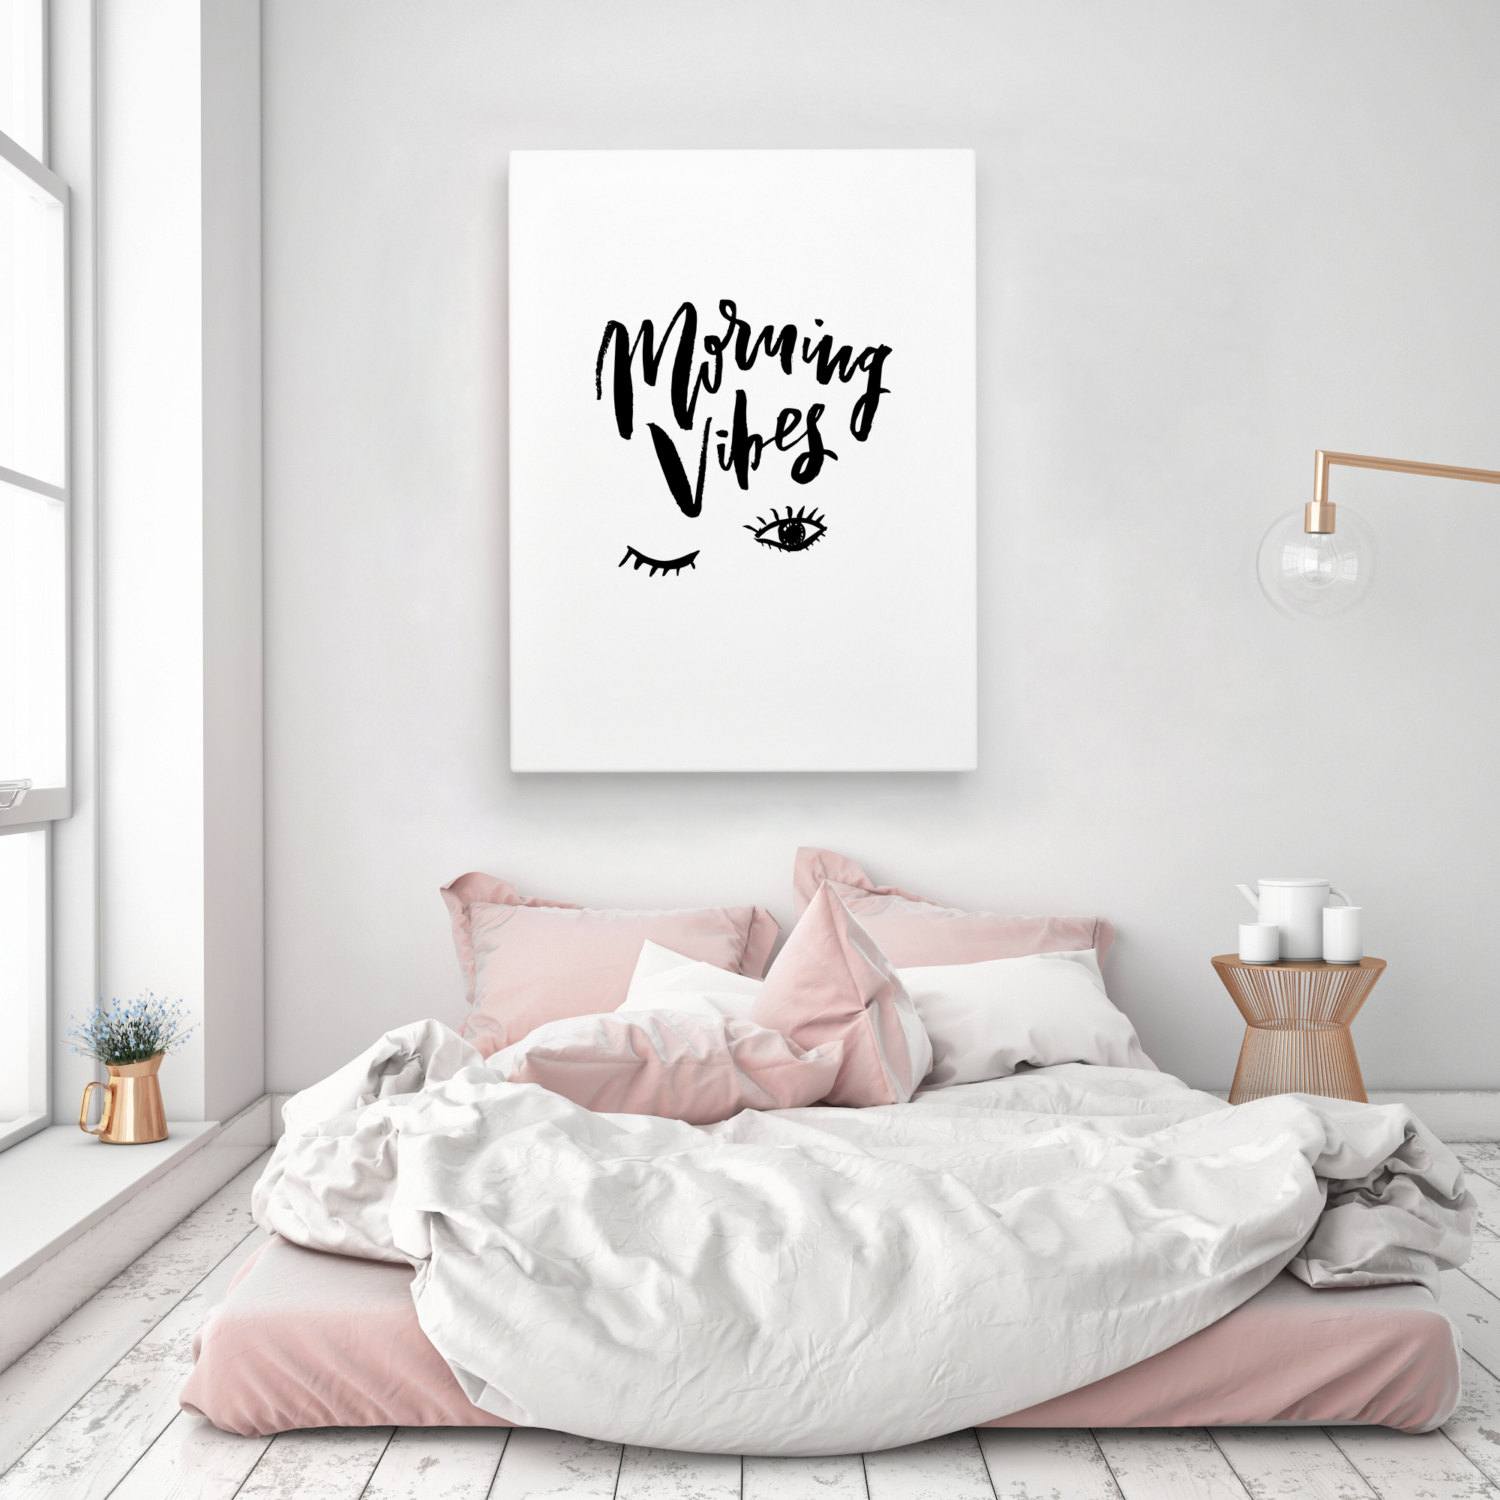 Tumblr Room Wall Decor Sacred Mornings Experience Your Full Radiance While The